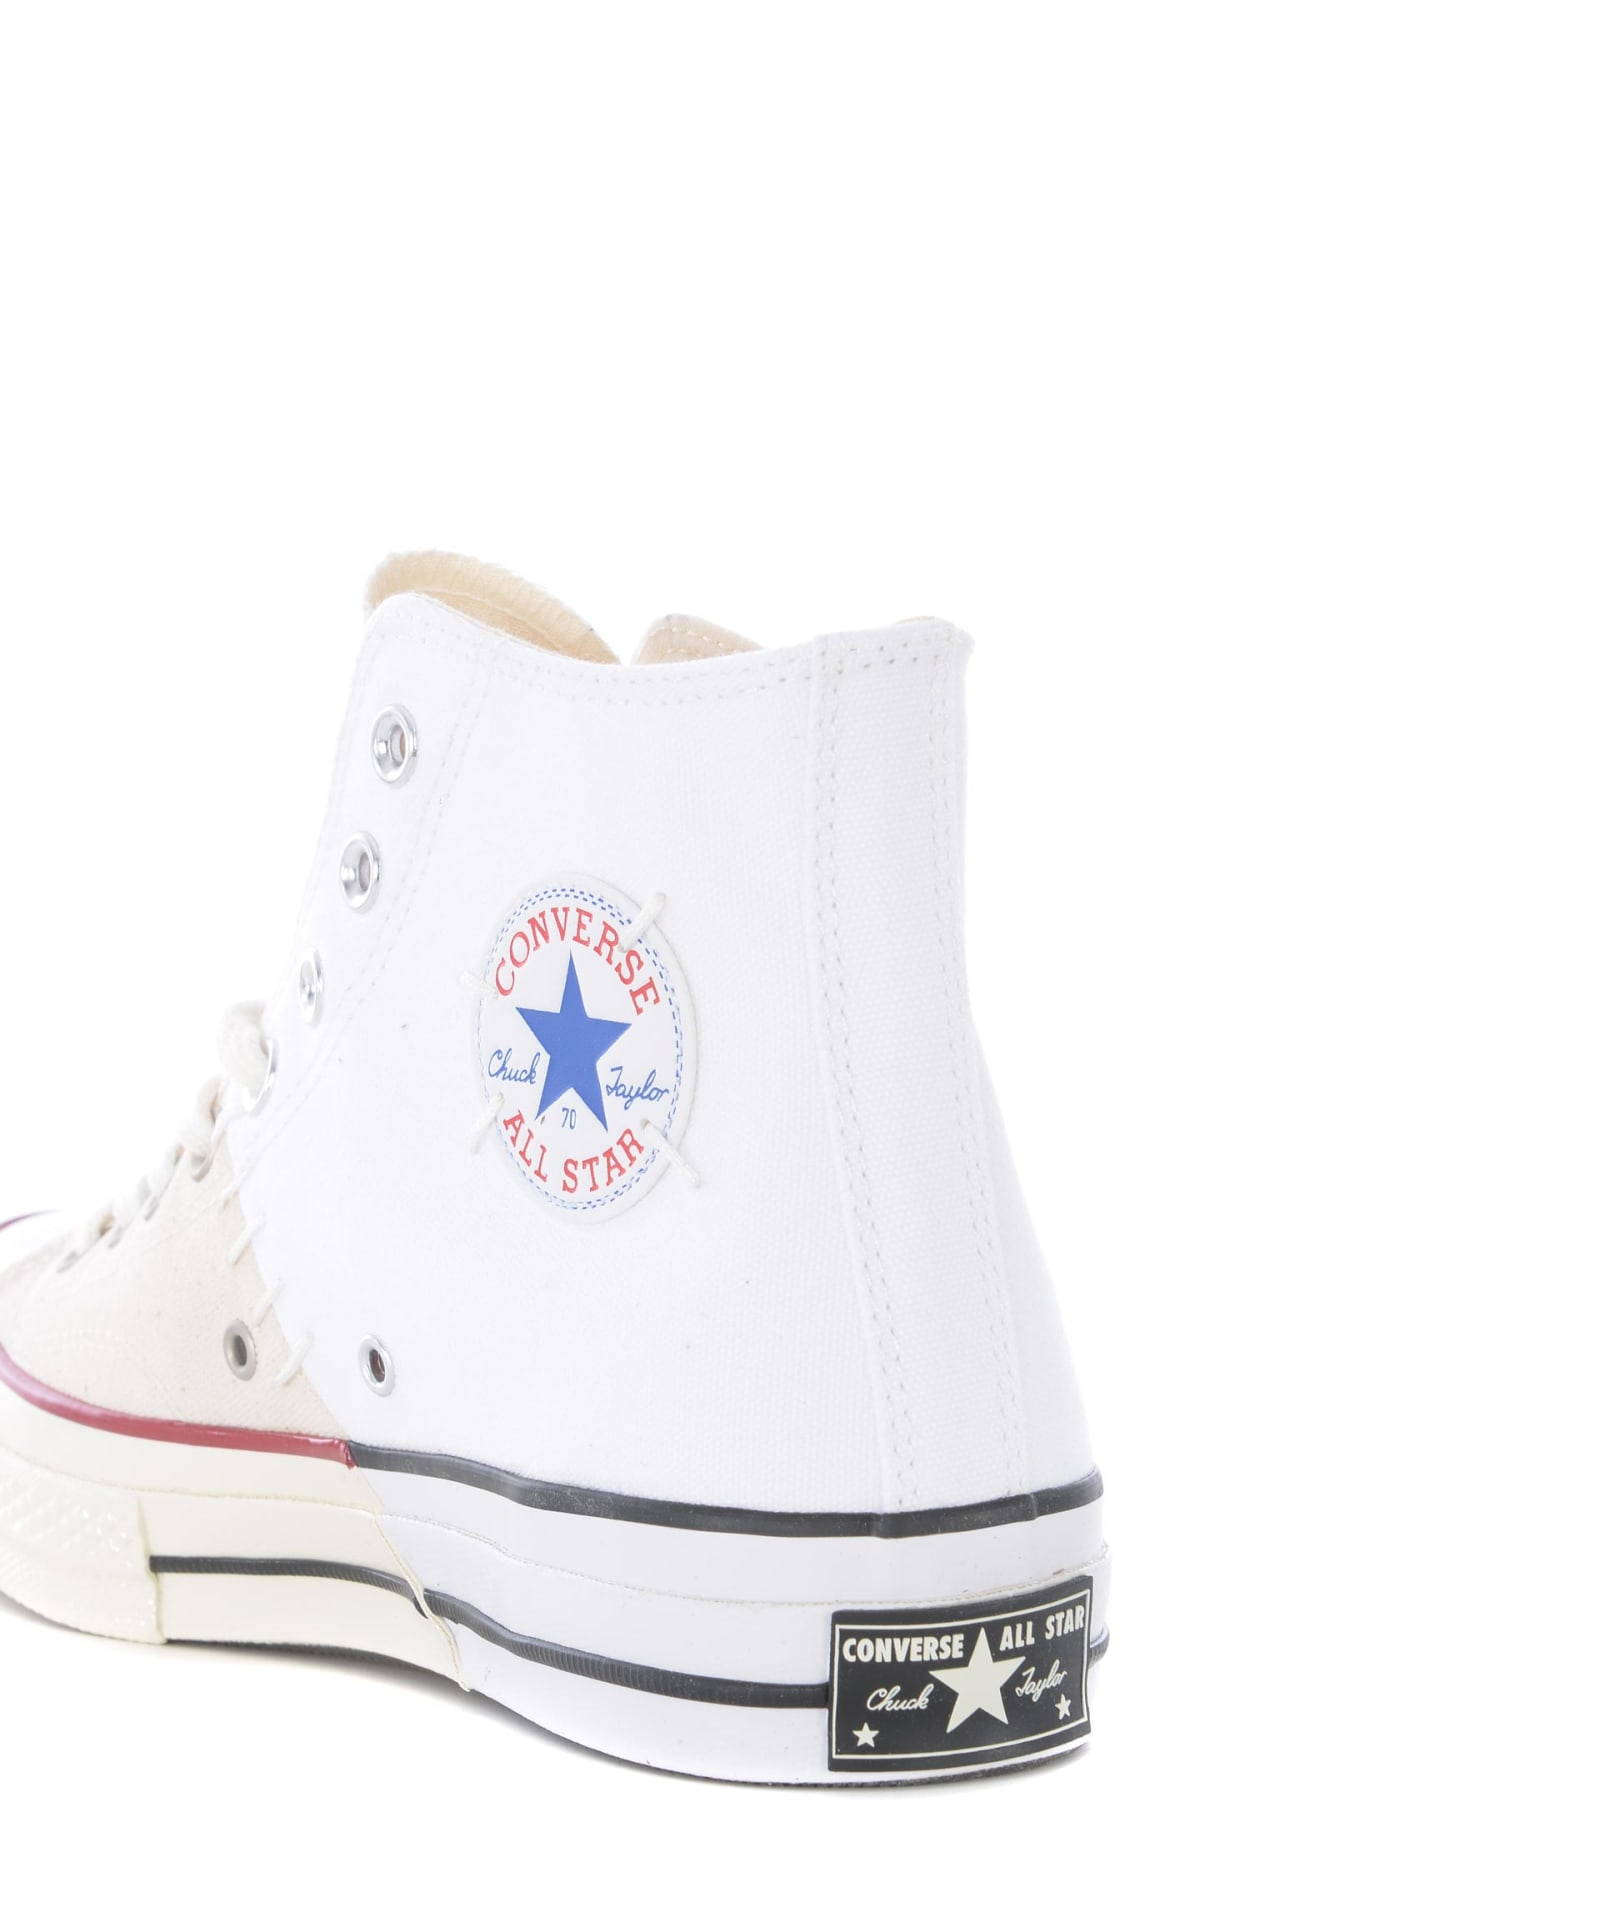 converse all star avorio